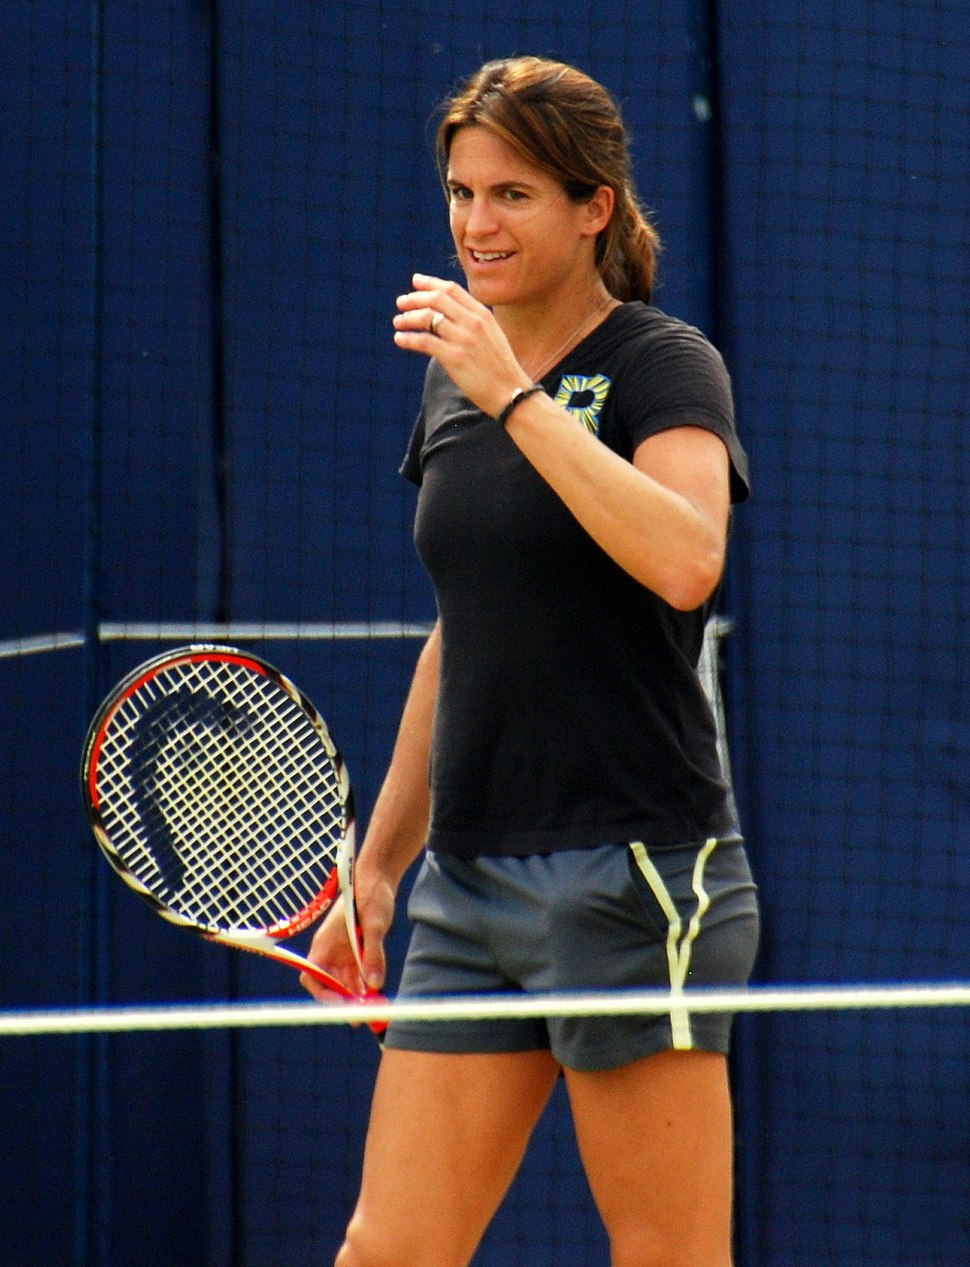 Amelie Mauresmo at the Aegon Championships 2014